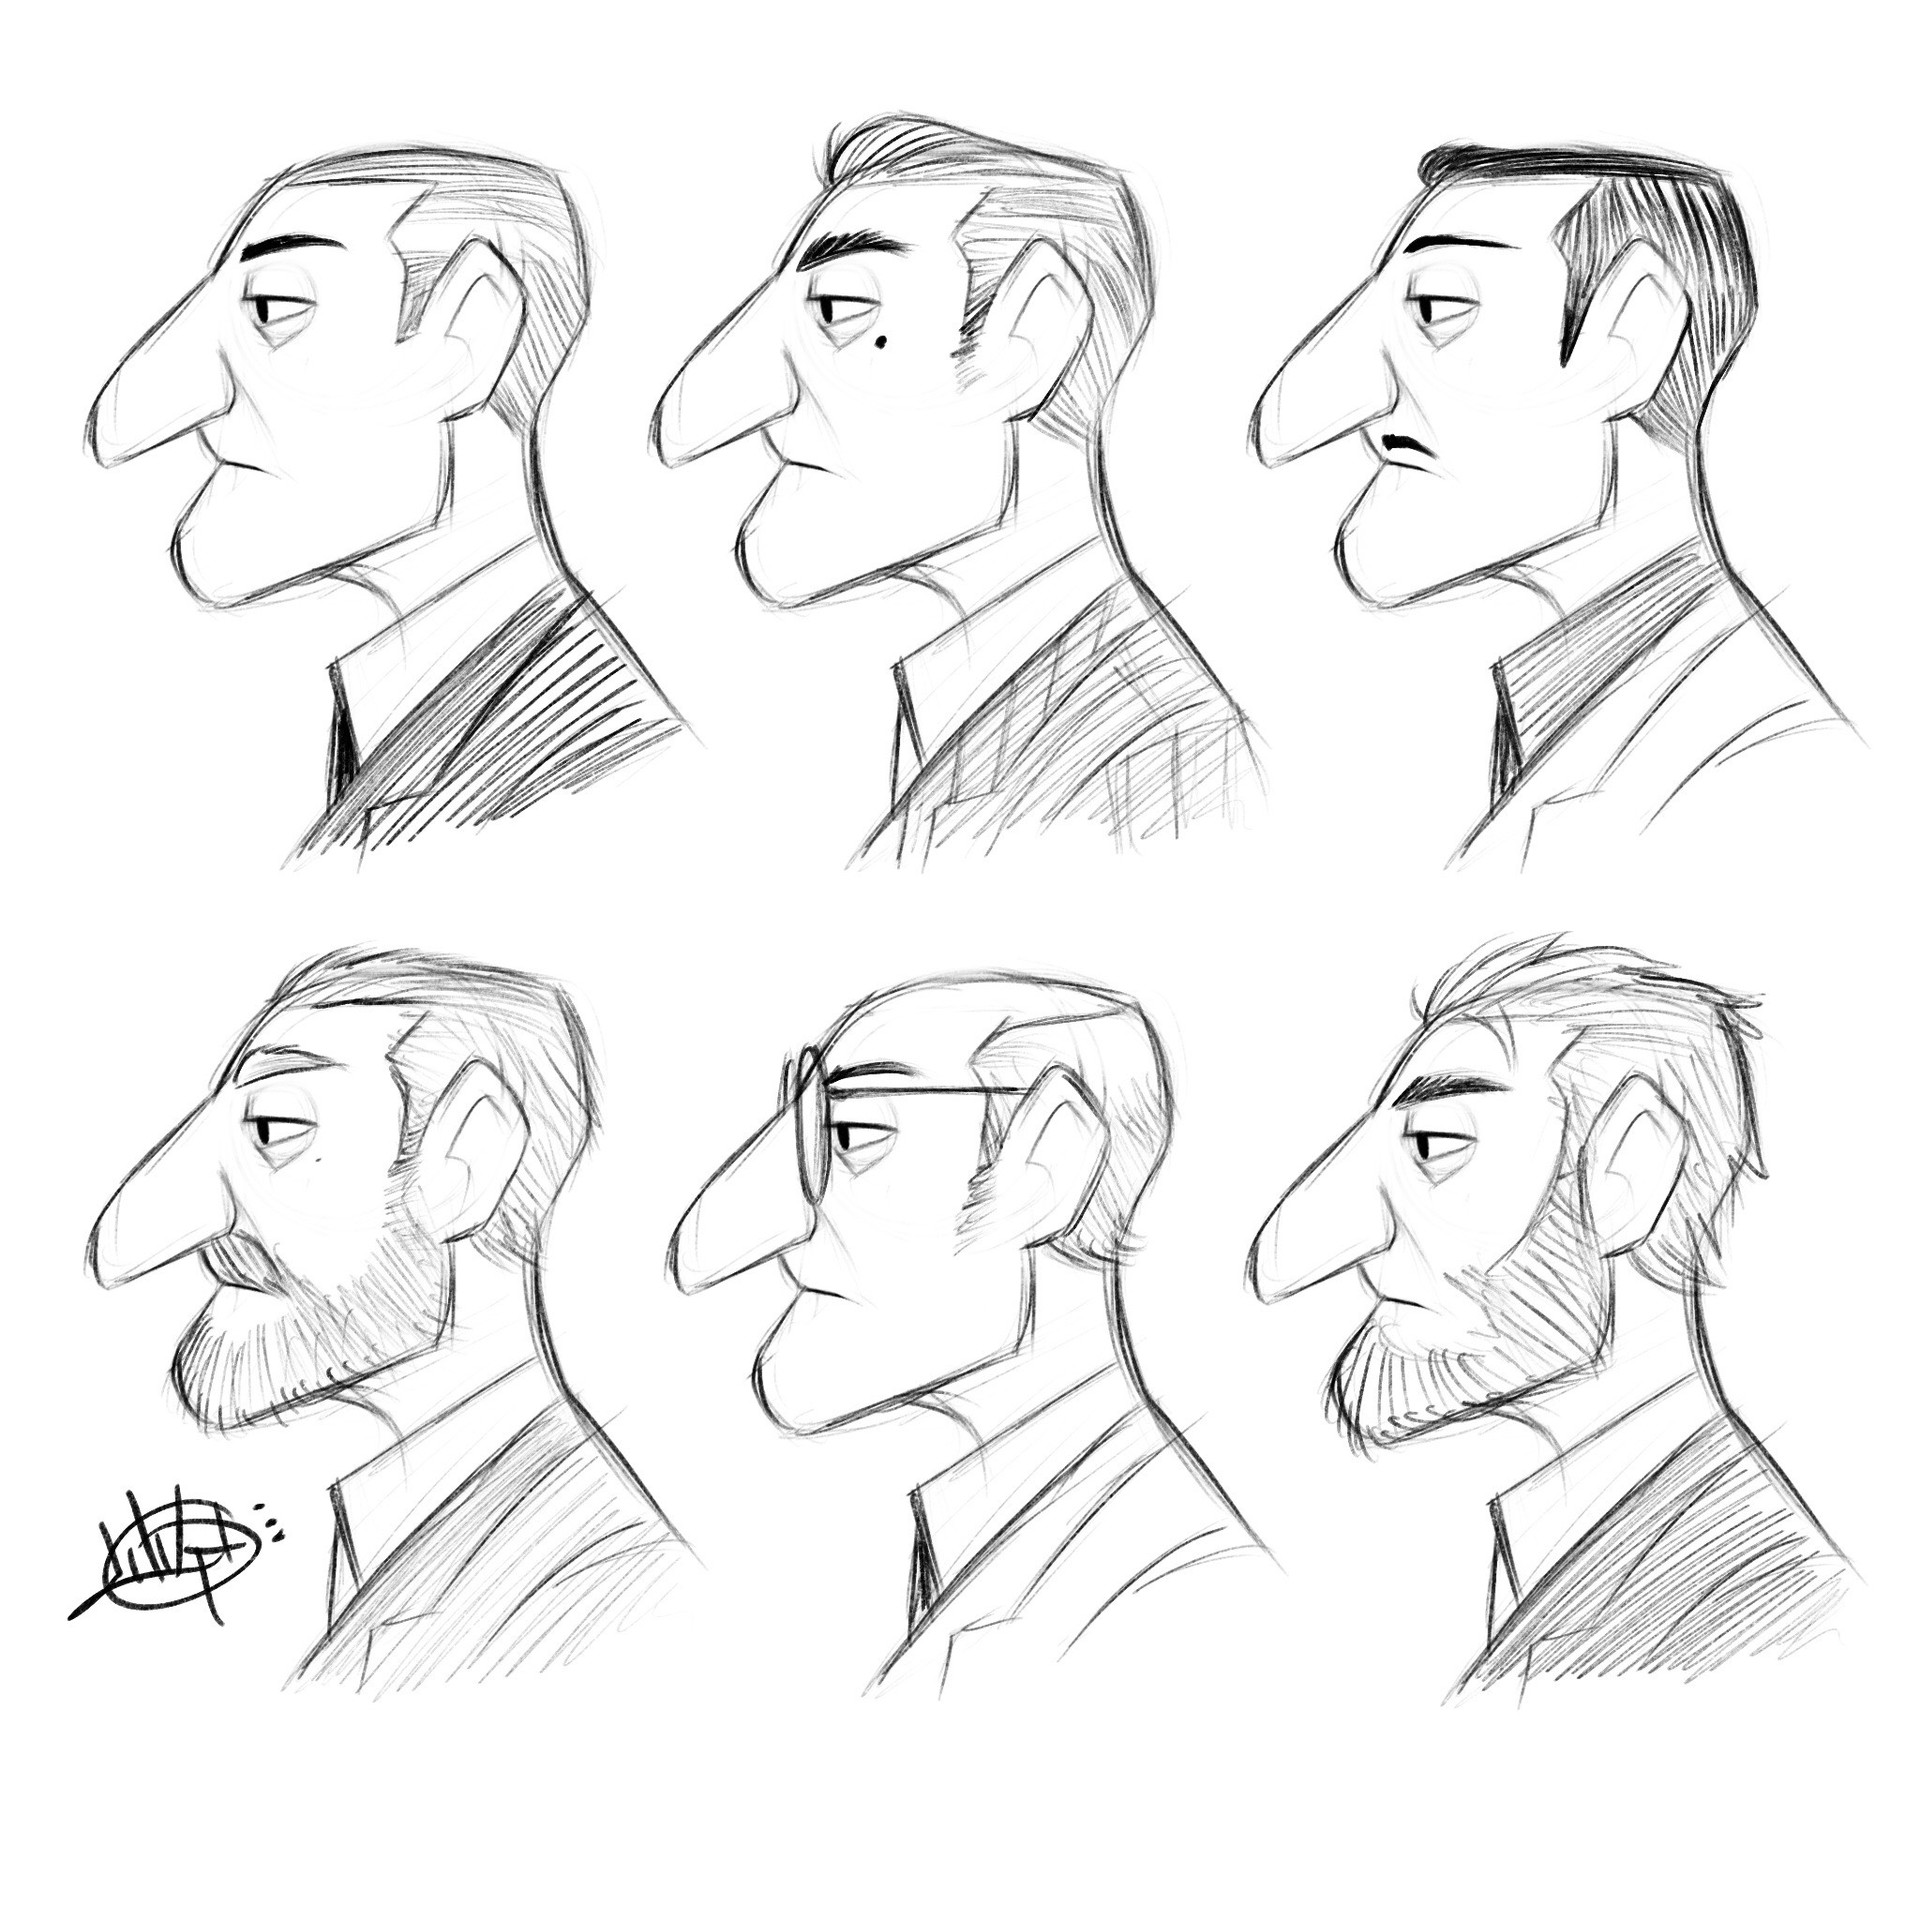 Luigi lucarelli profile character variety sketches